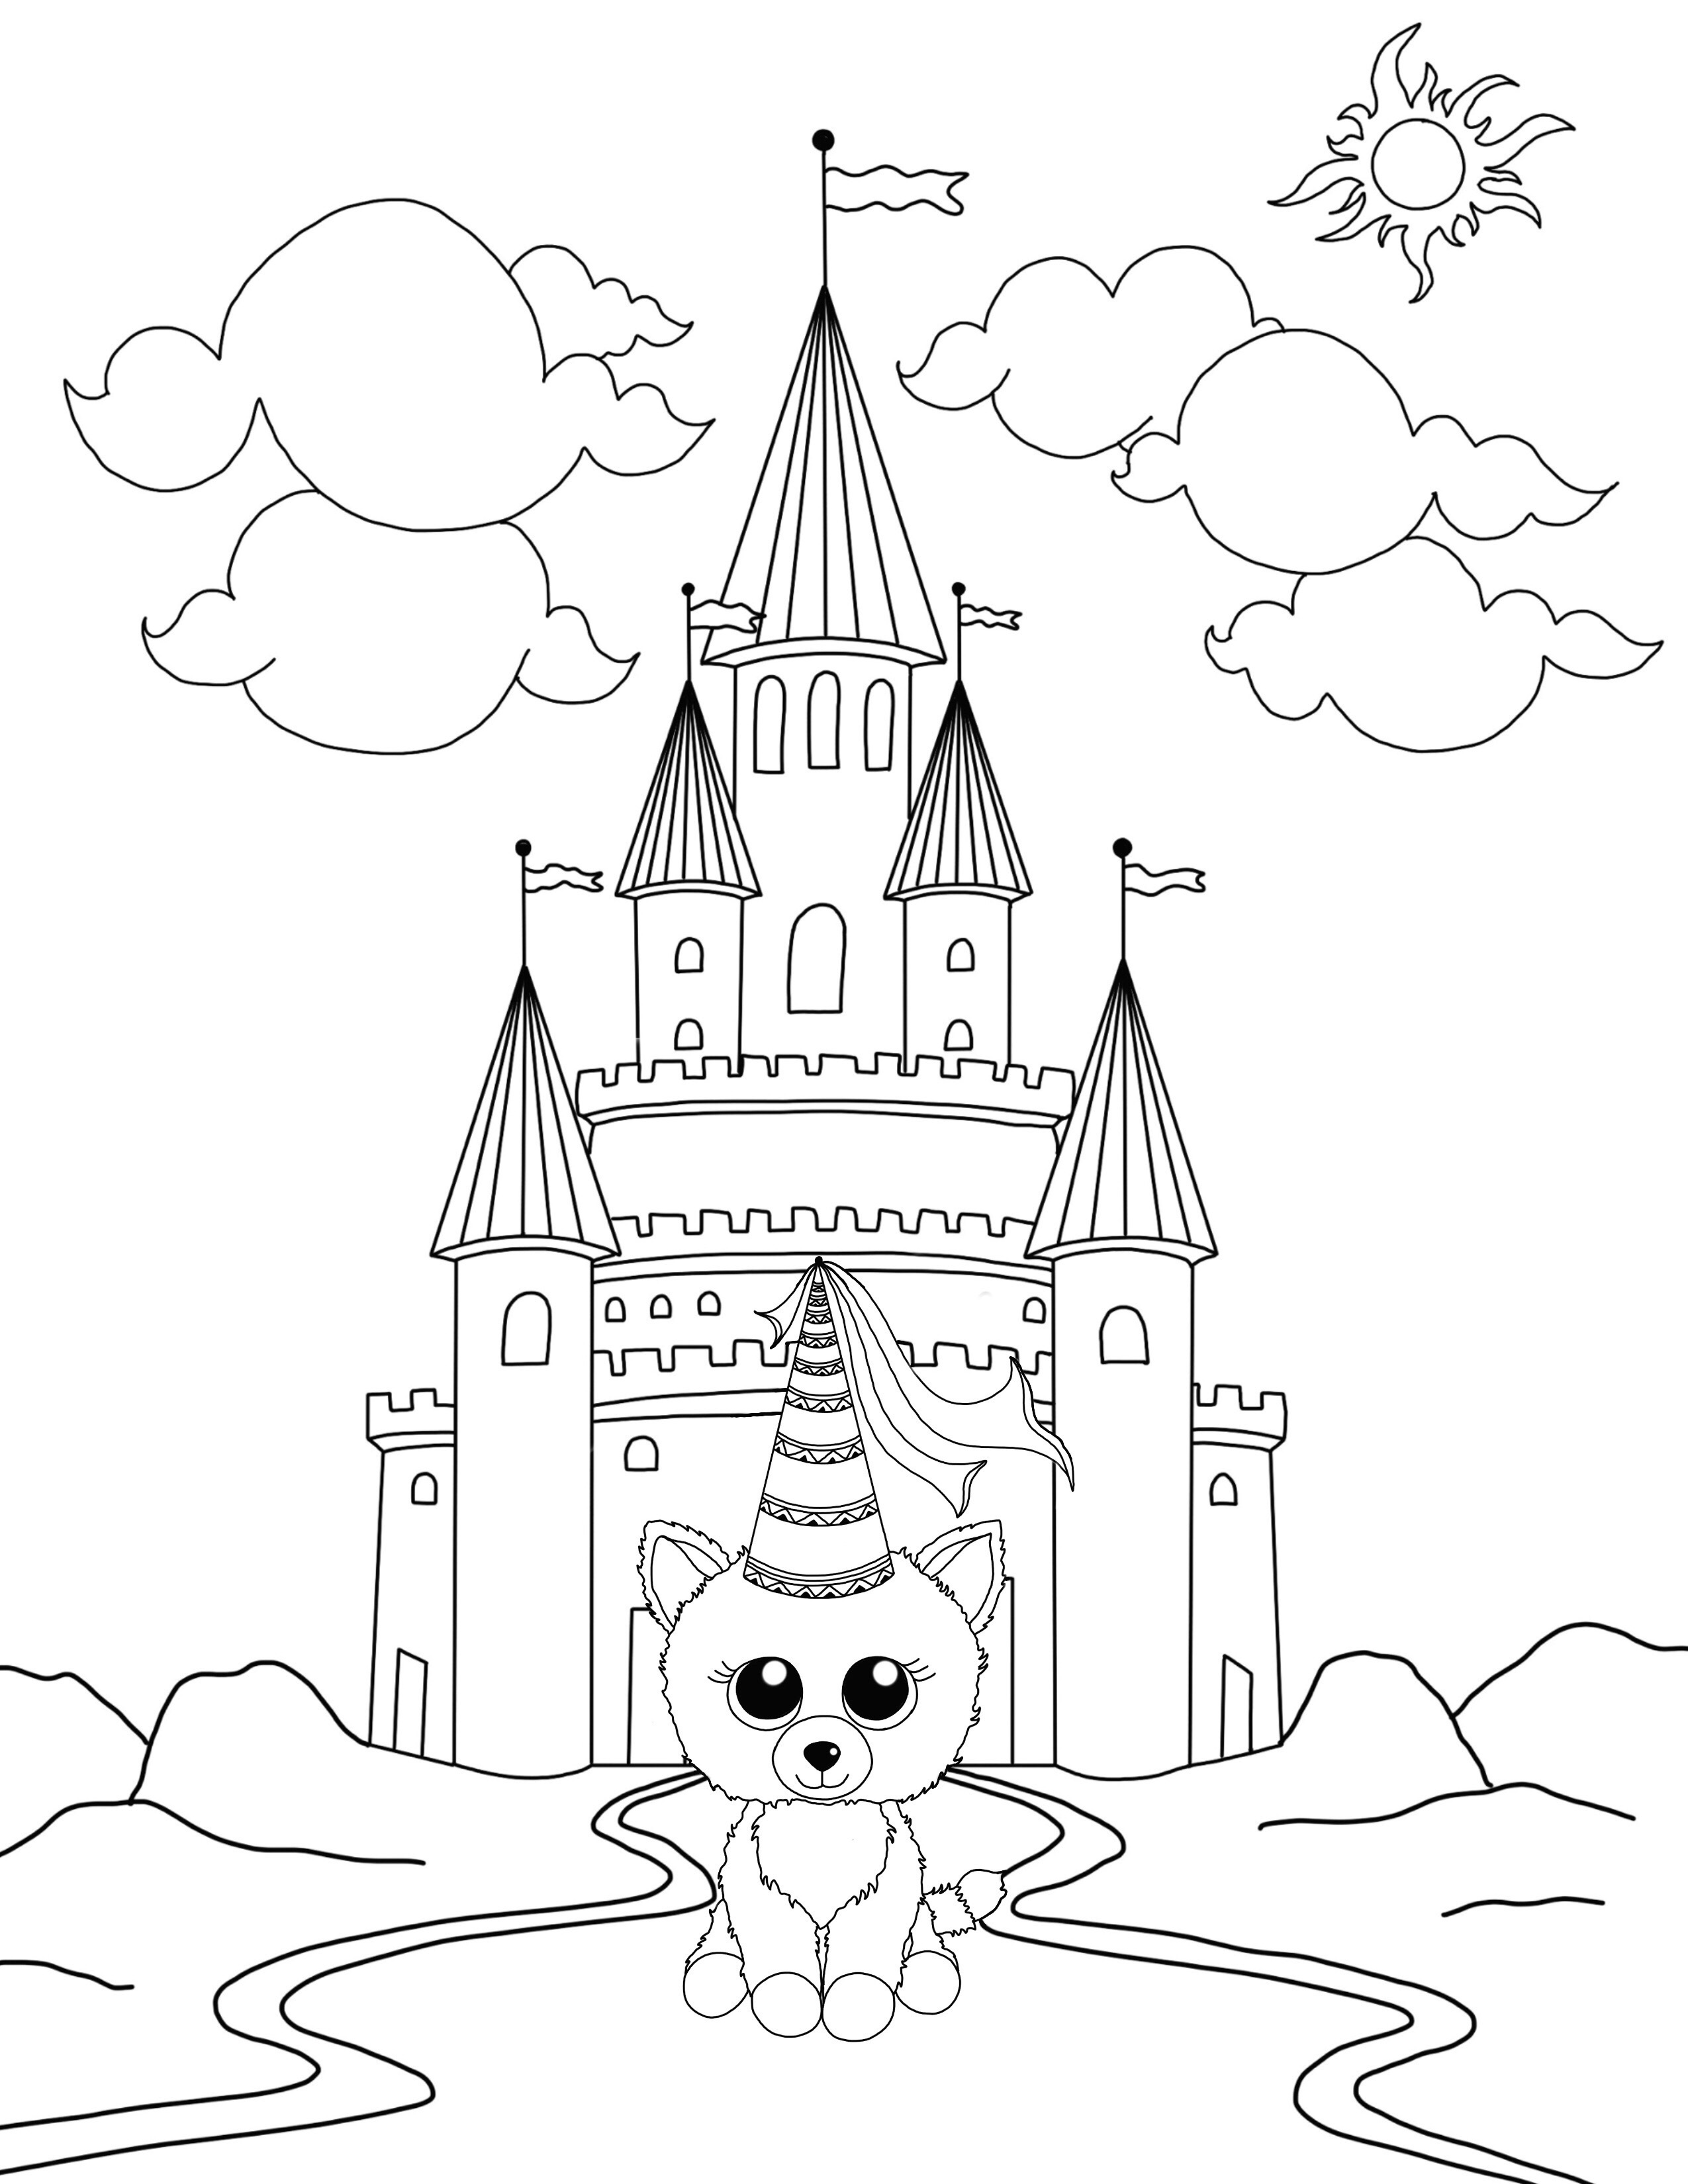 Cat Princess High Resolution Coloring Page Download